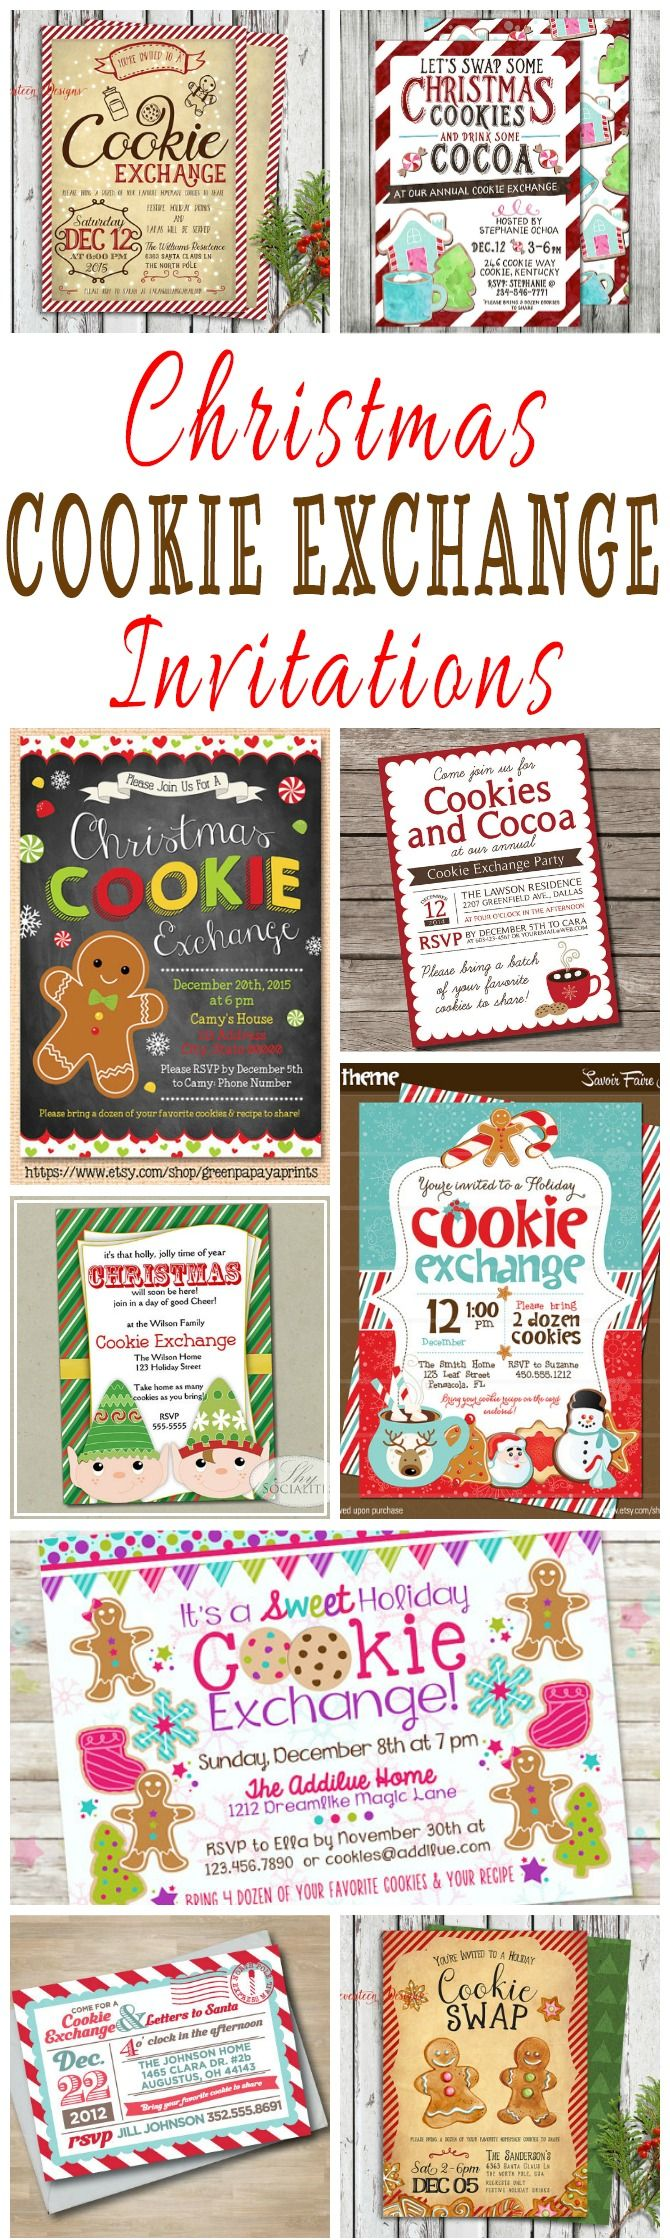 25 DIY Printable Christmas Cookie Exchange Party Invitations